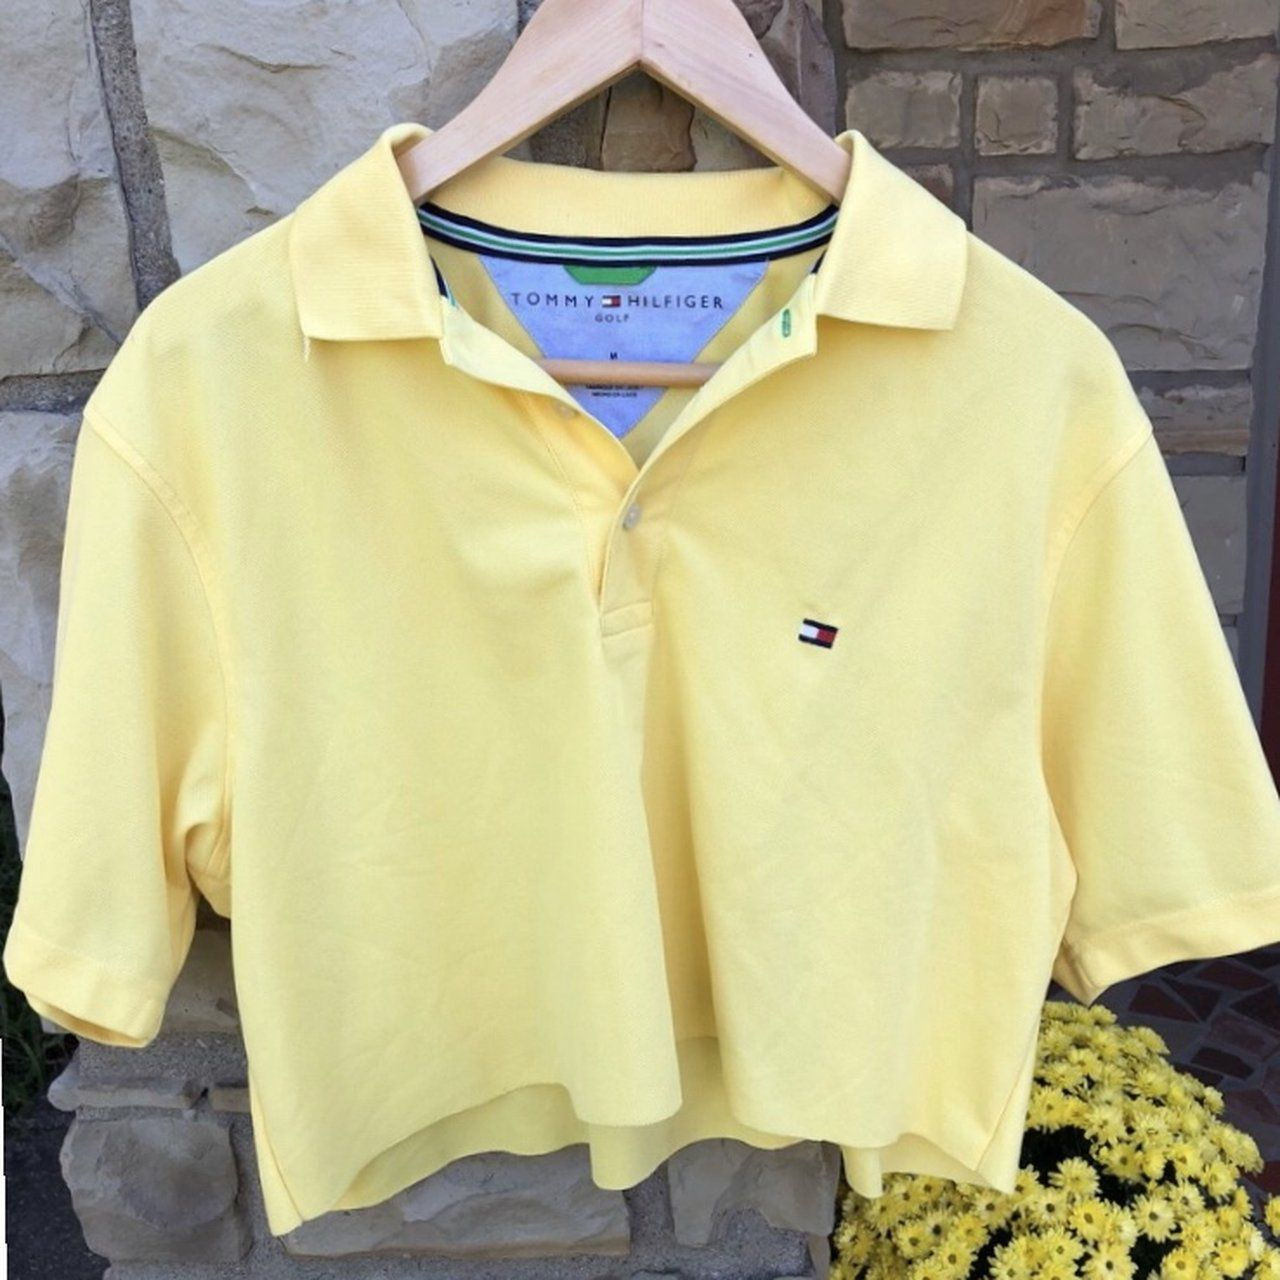 9bffe76887c40 tommy hilfiger slight cropped polo shirt ~no flaws ~emma to - Depop